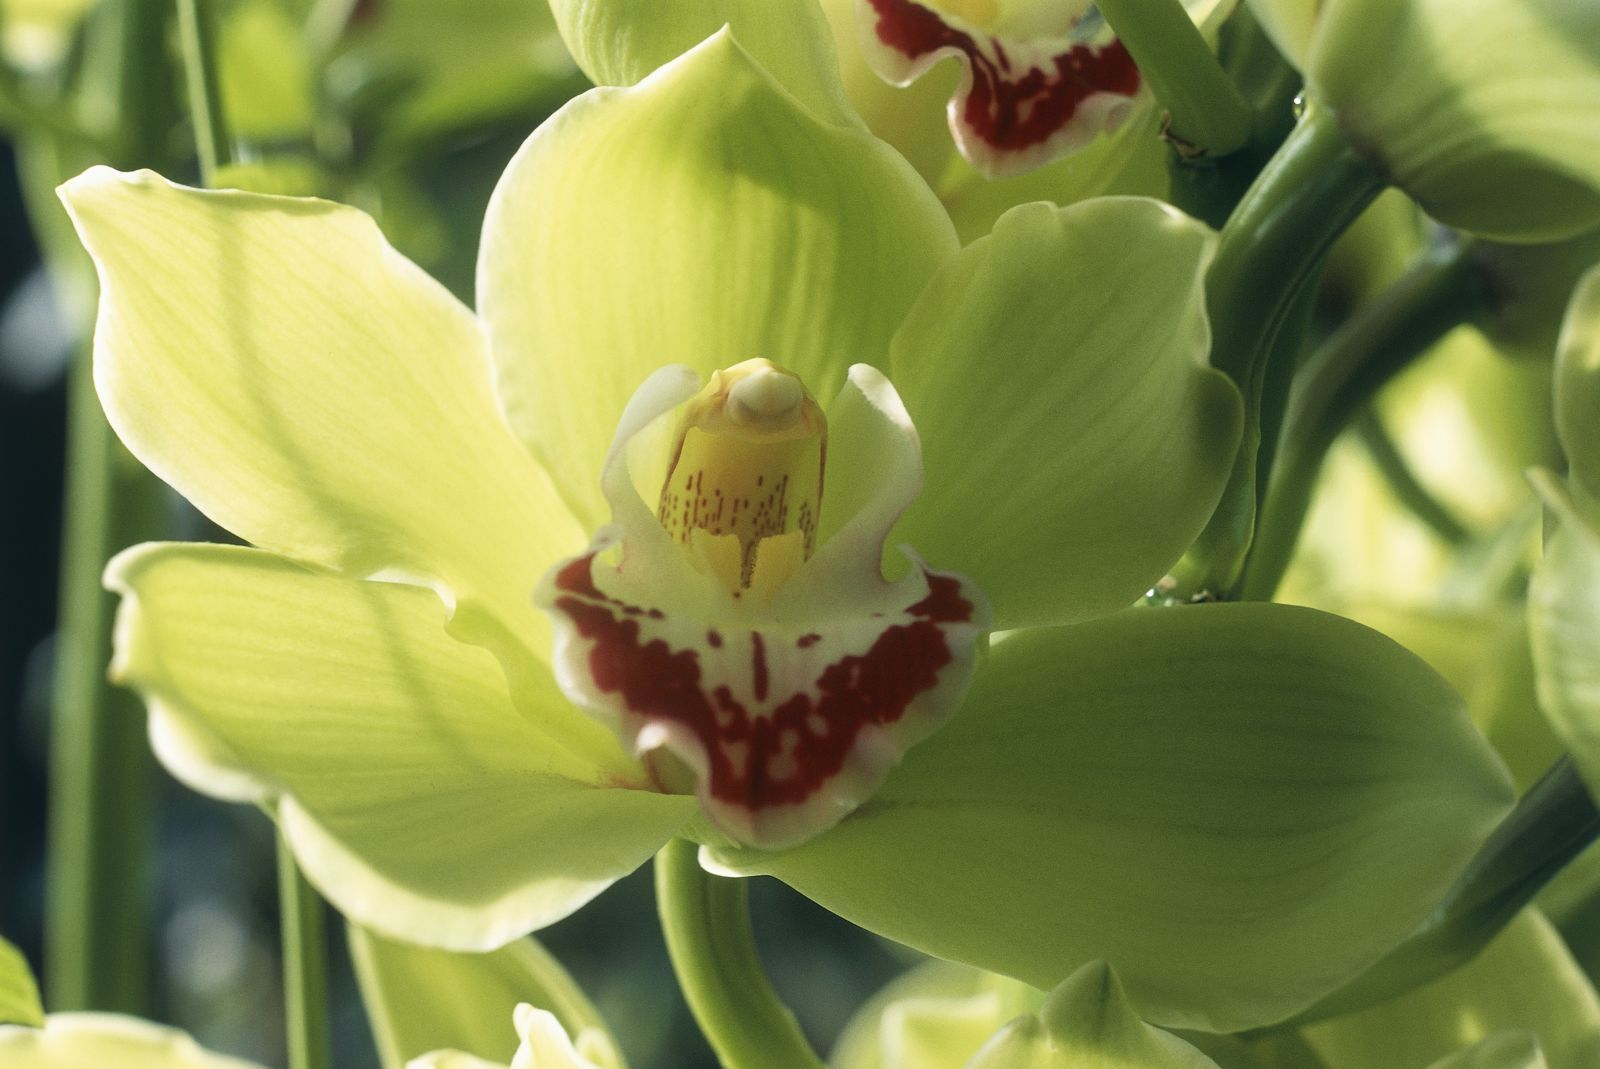 Orchids are used in traditional Asian medicine, perfumes, and spices.